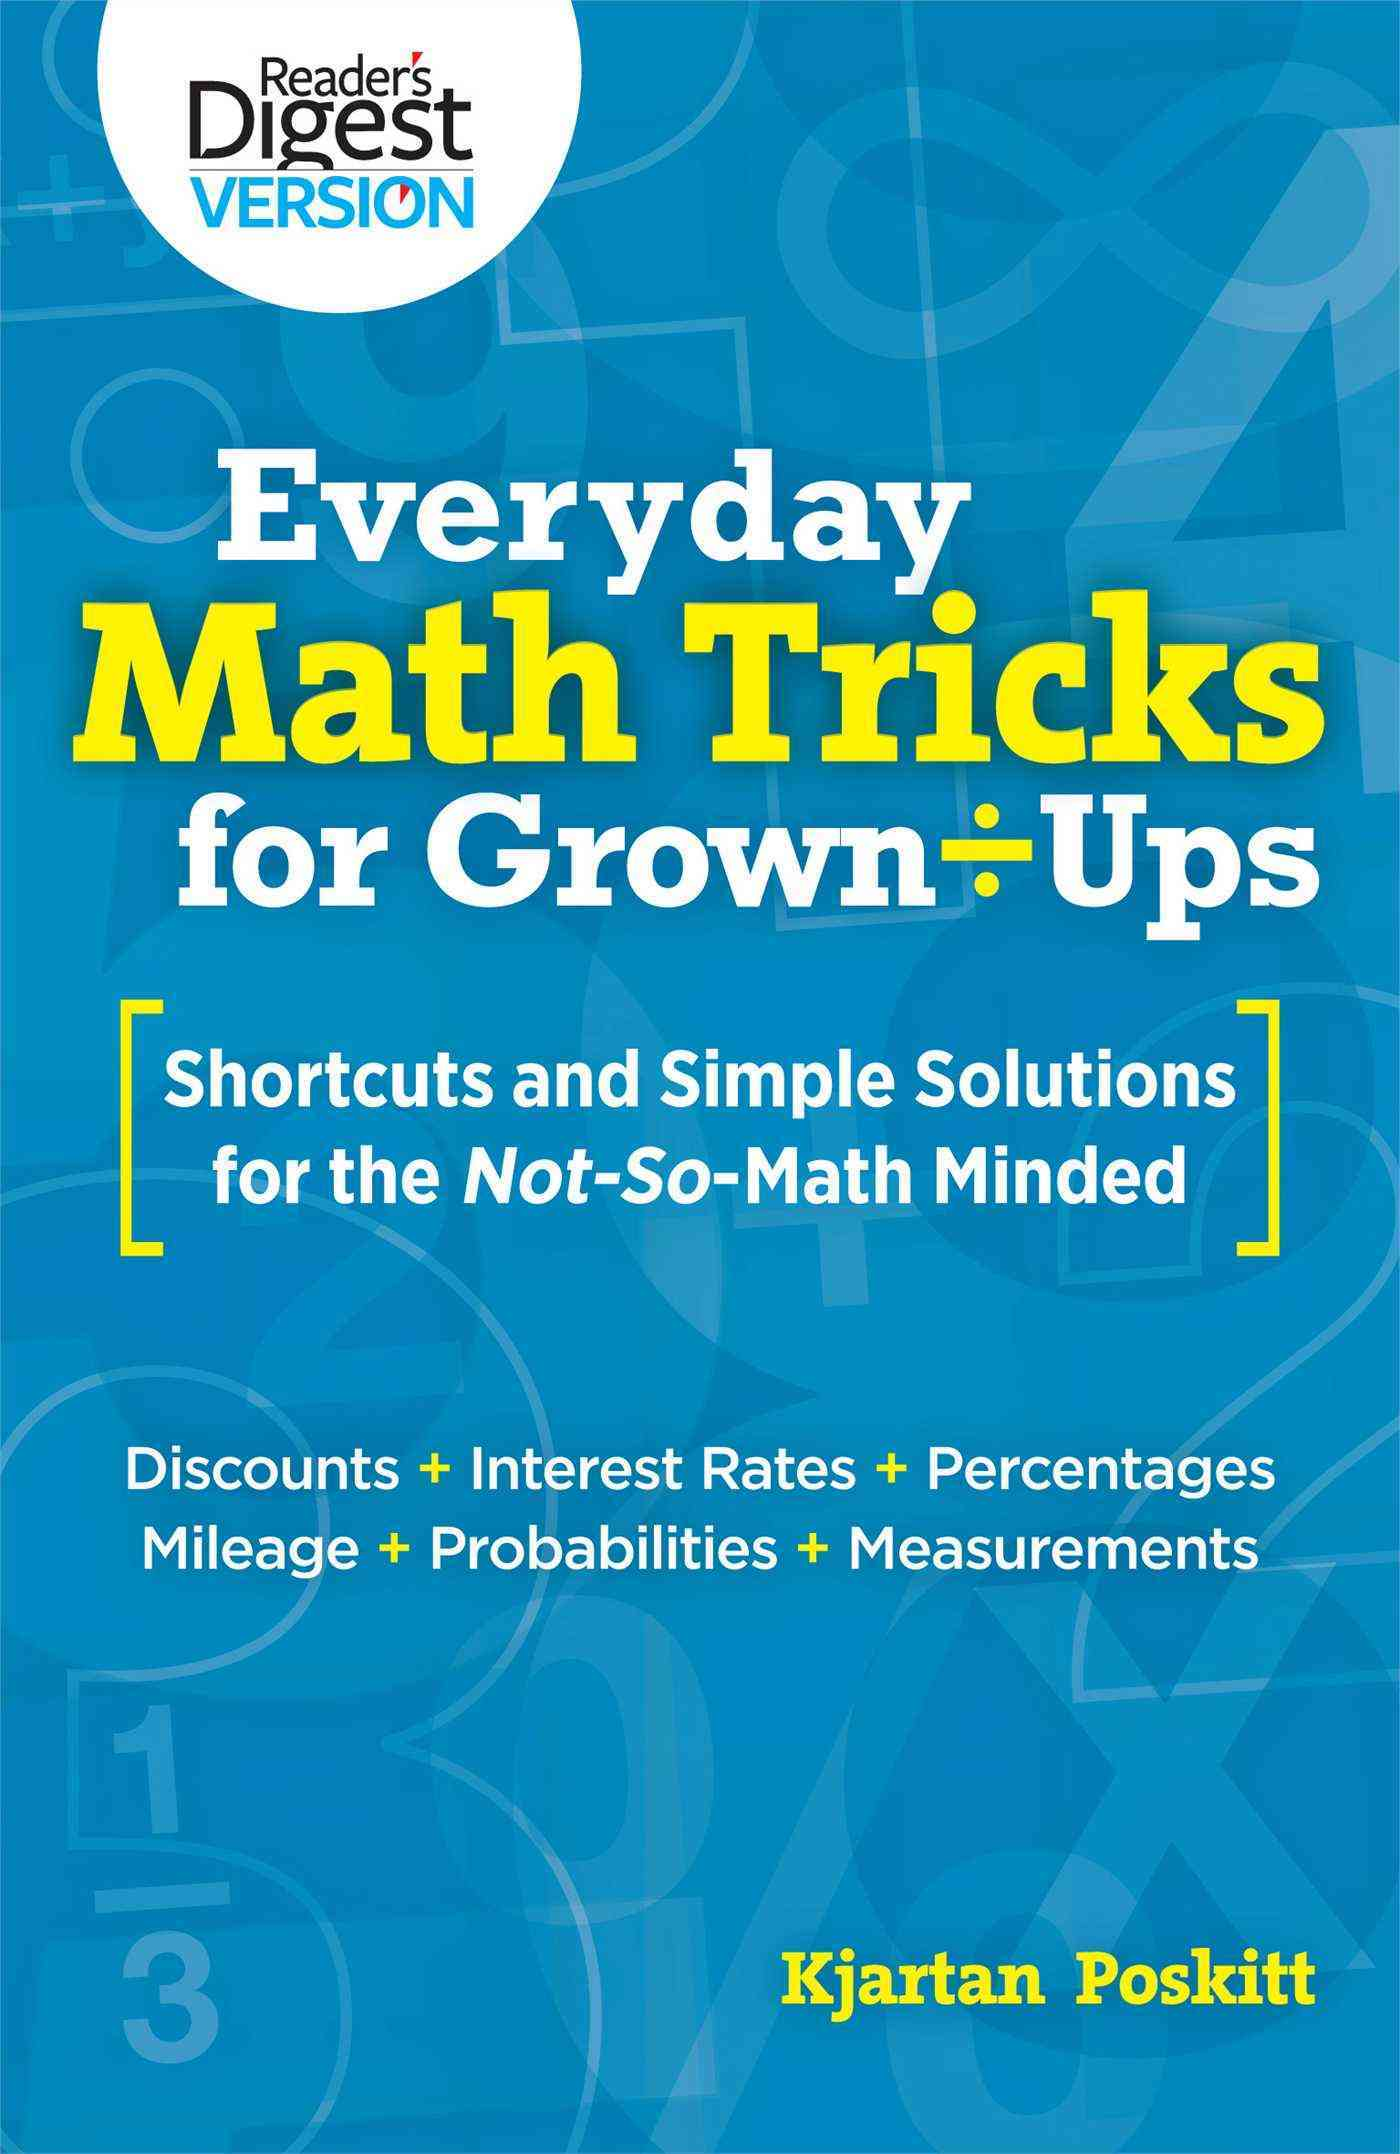 Everyday Math Tricks for Grown Ups: Shortcuts and Simple Solutions for the Not-So-Math Minded (Paperback)